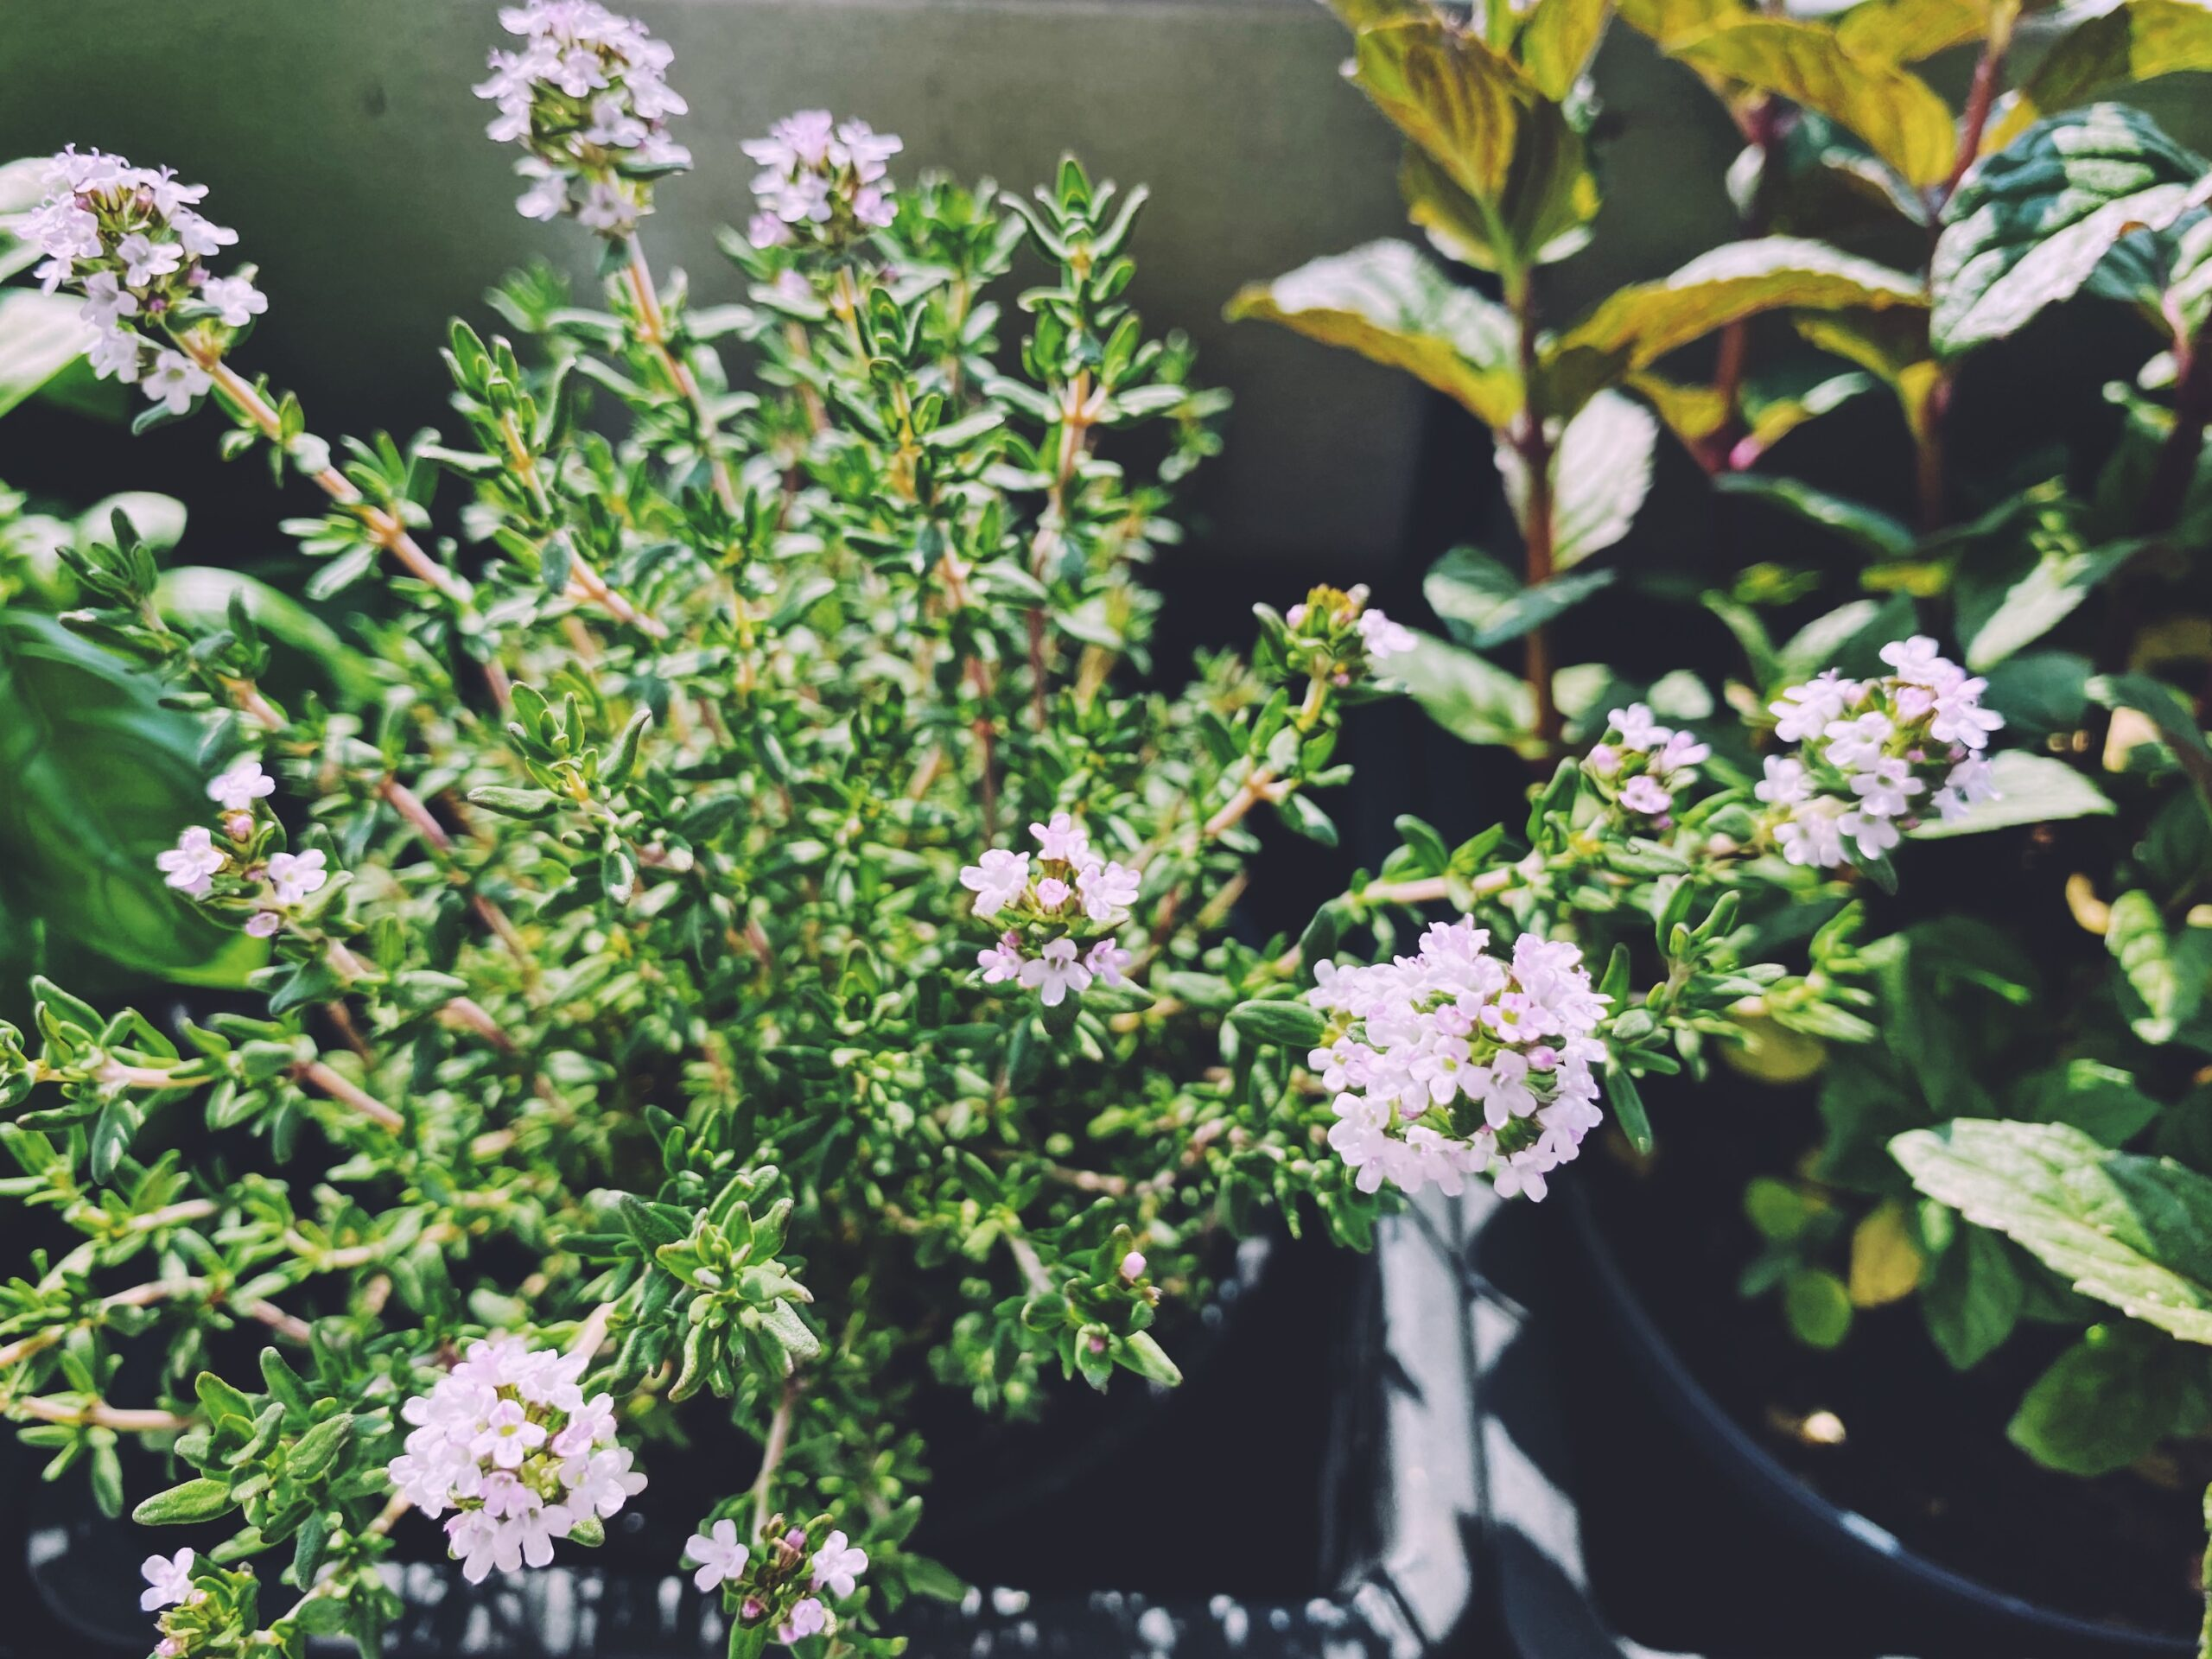 Aromatic herbs in the urban garden on the balcony